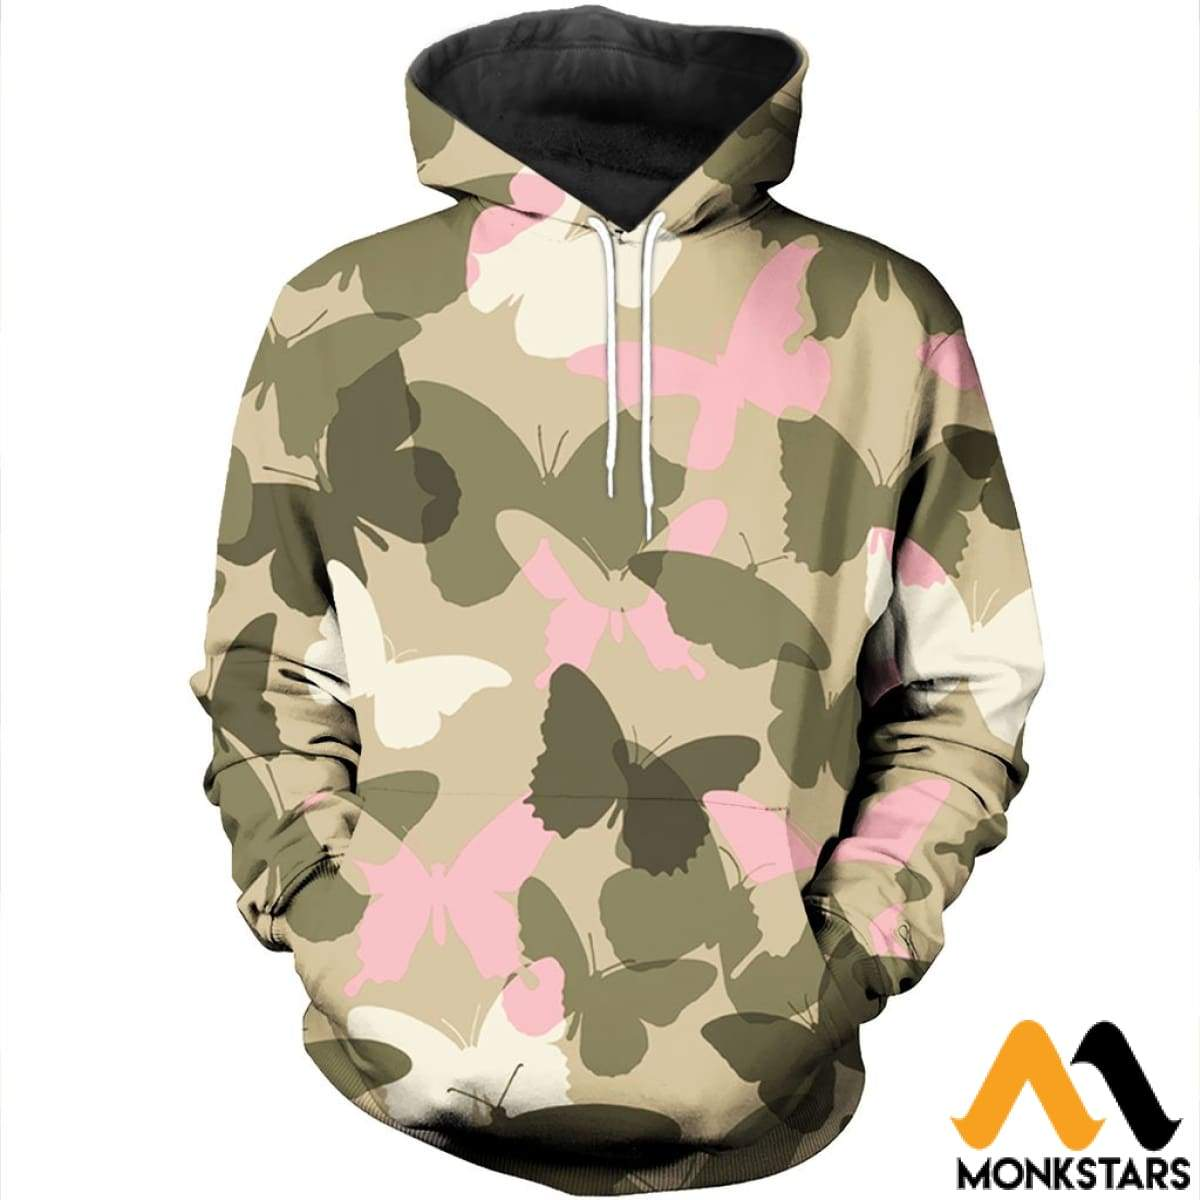 80b188d98c59 Report Design. Previous. 3D All Over Printed Pink Butterfly Camo ...